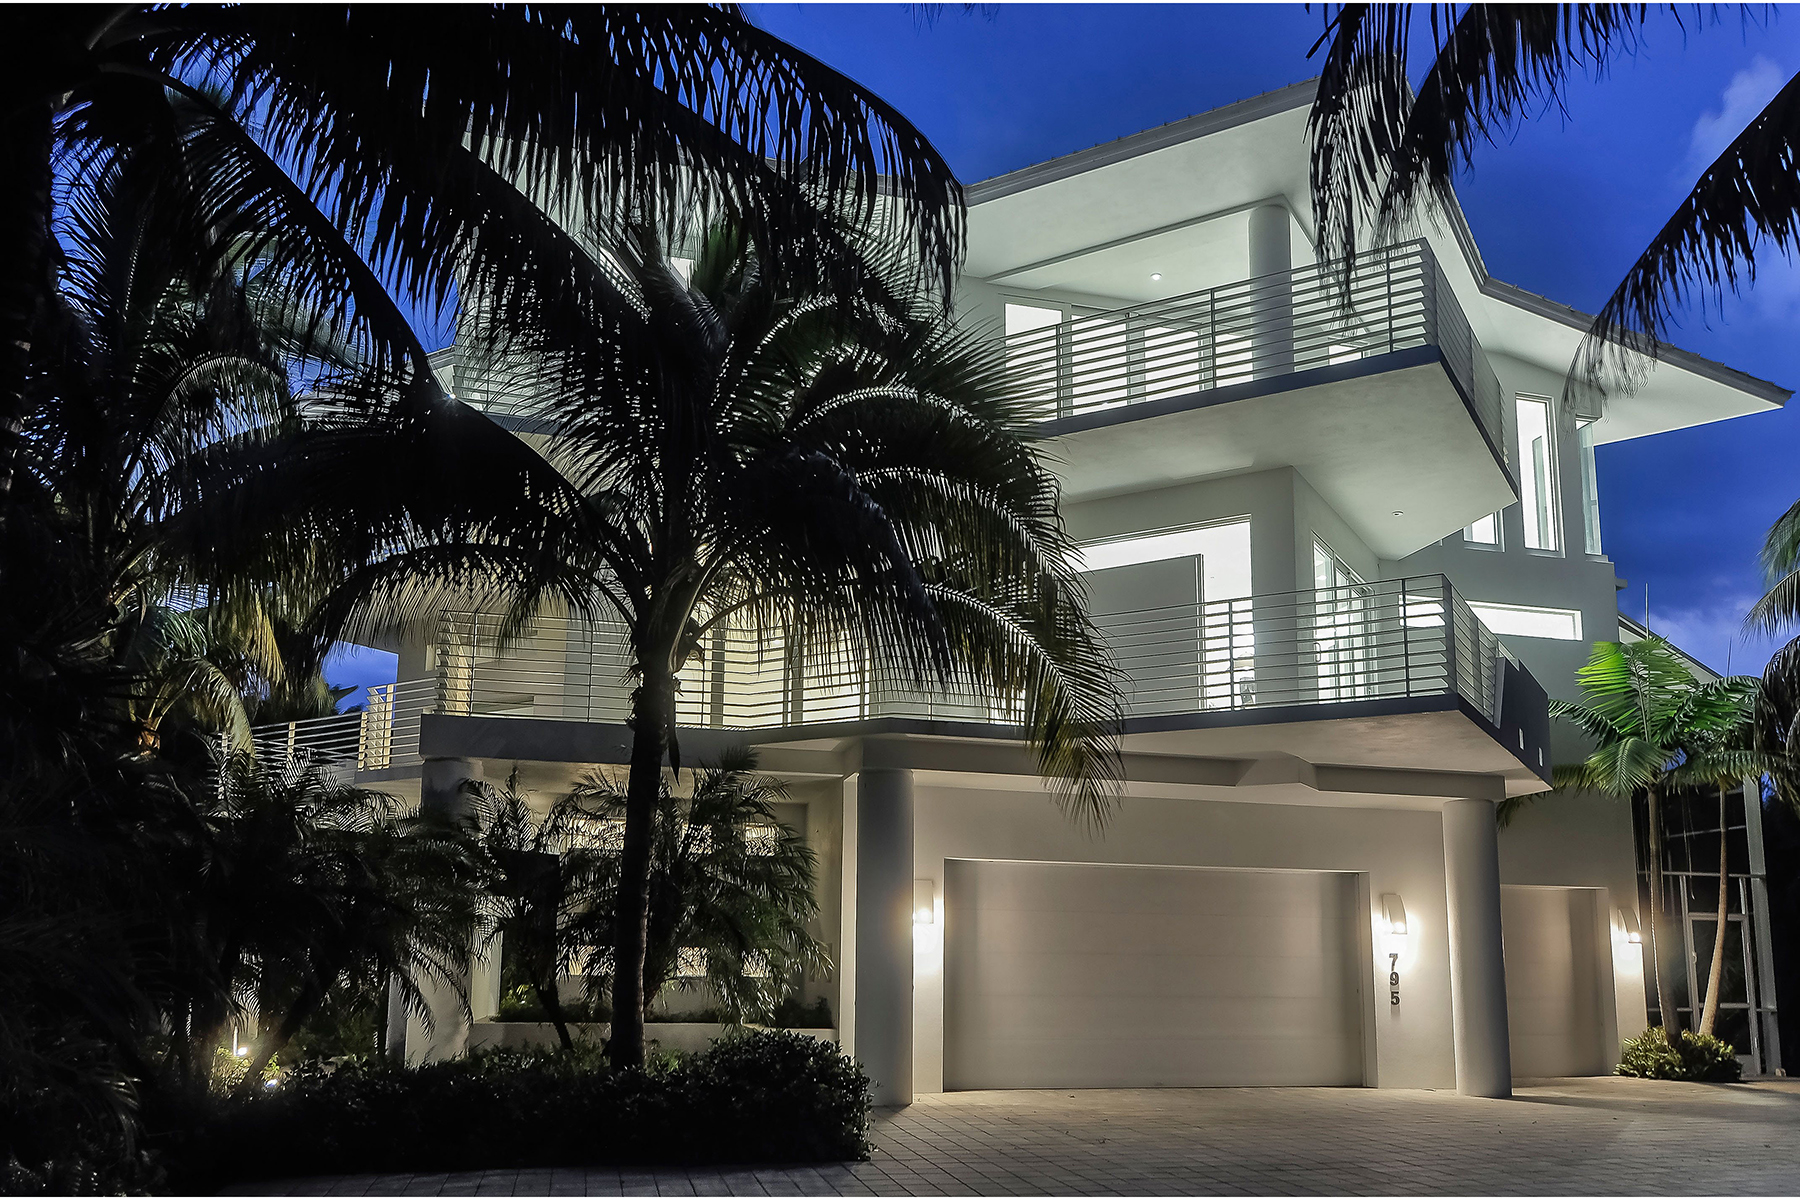 Single Family Home for Sale at MARCO ISLAND-HIDEAWAY BEACH 795 Waterside Dr, Marco Island, Florida, 34145 United States